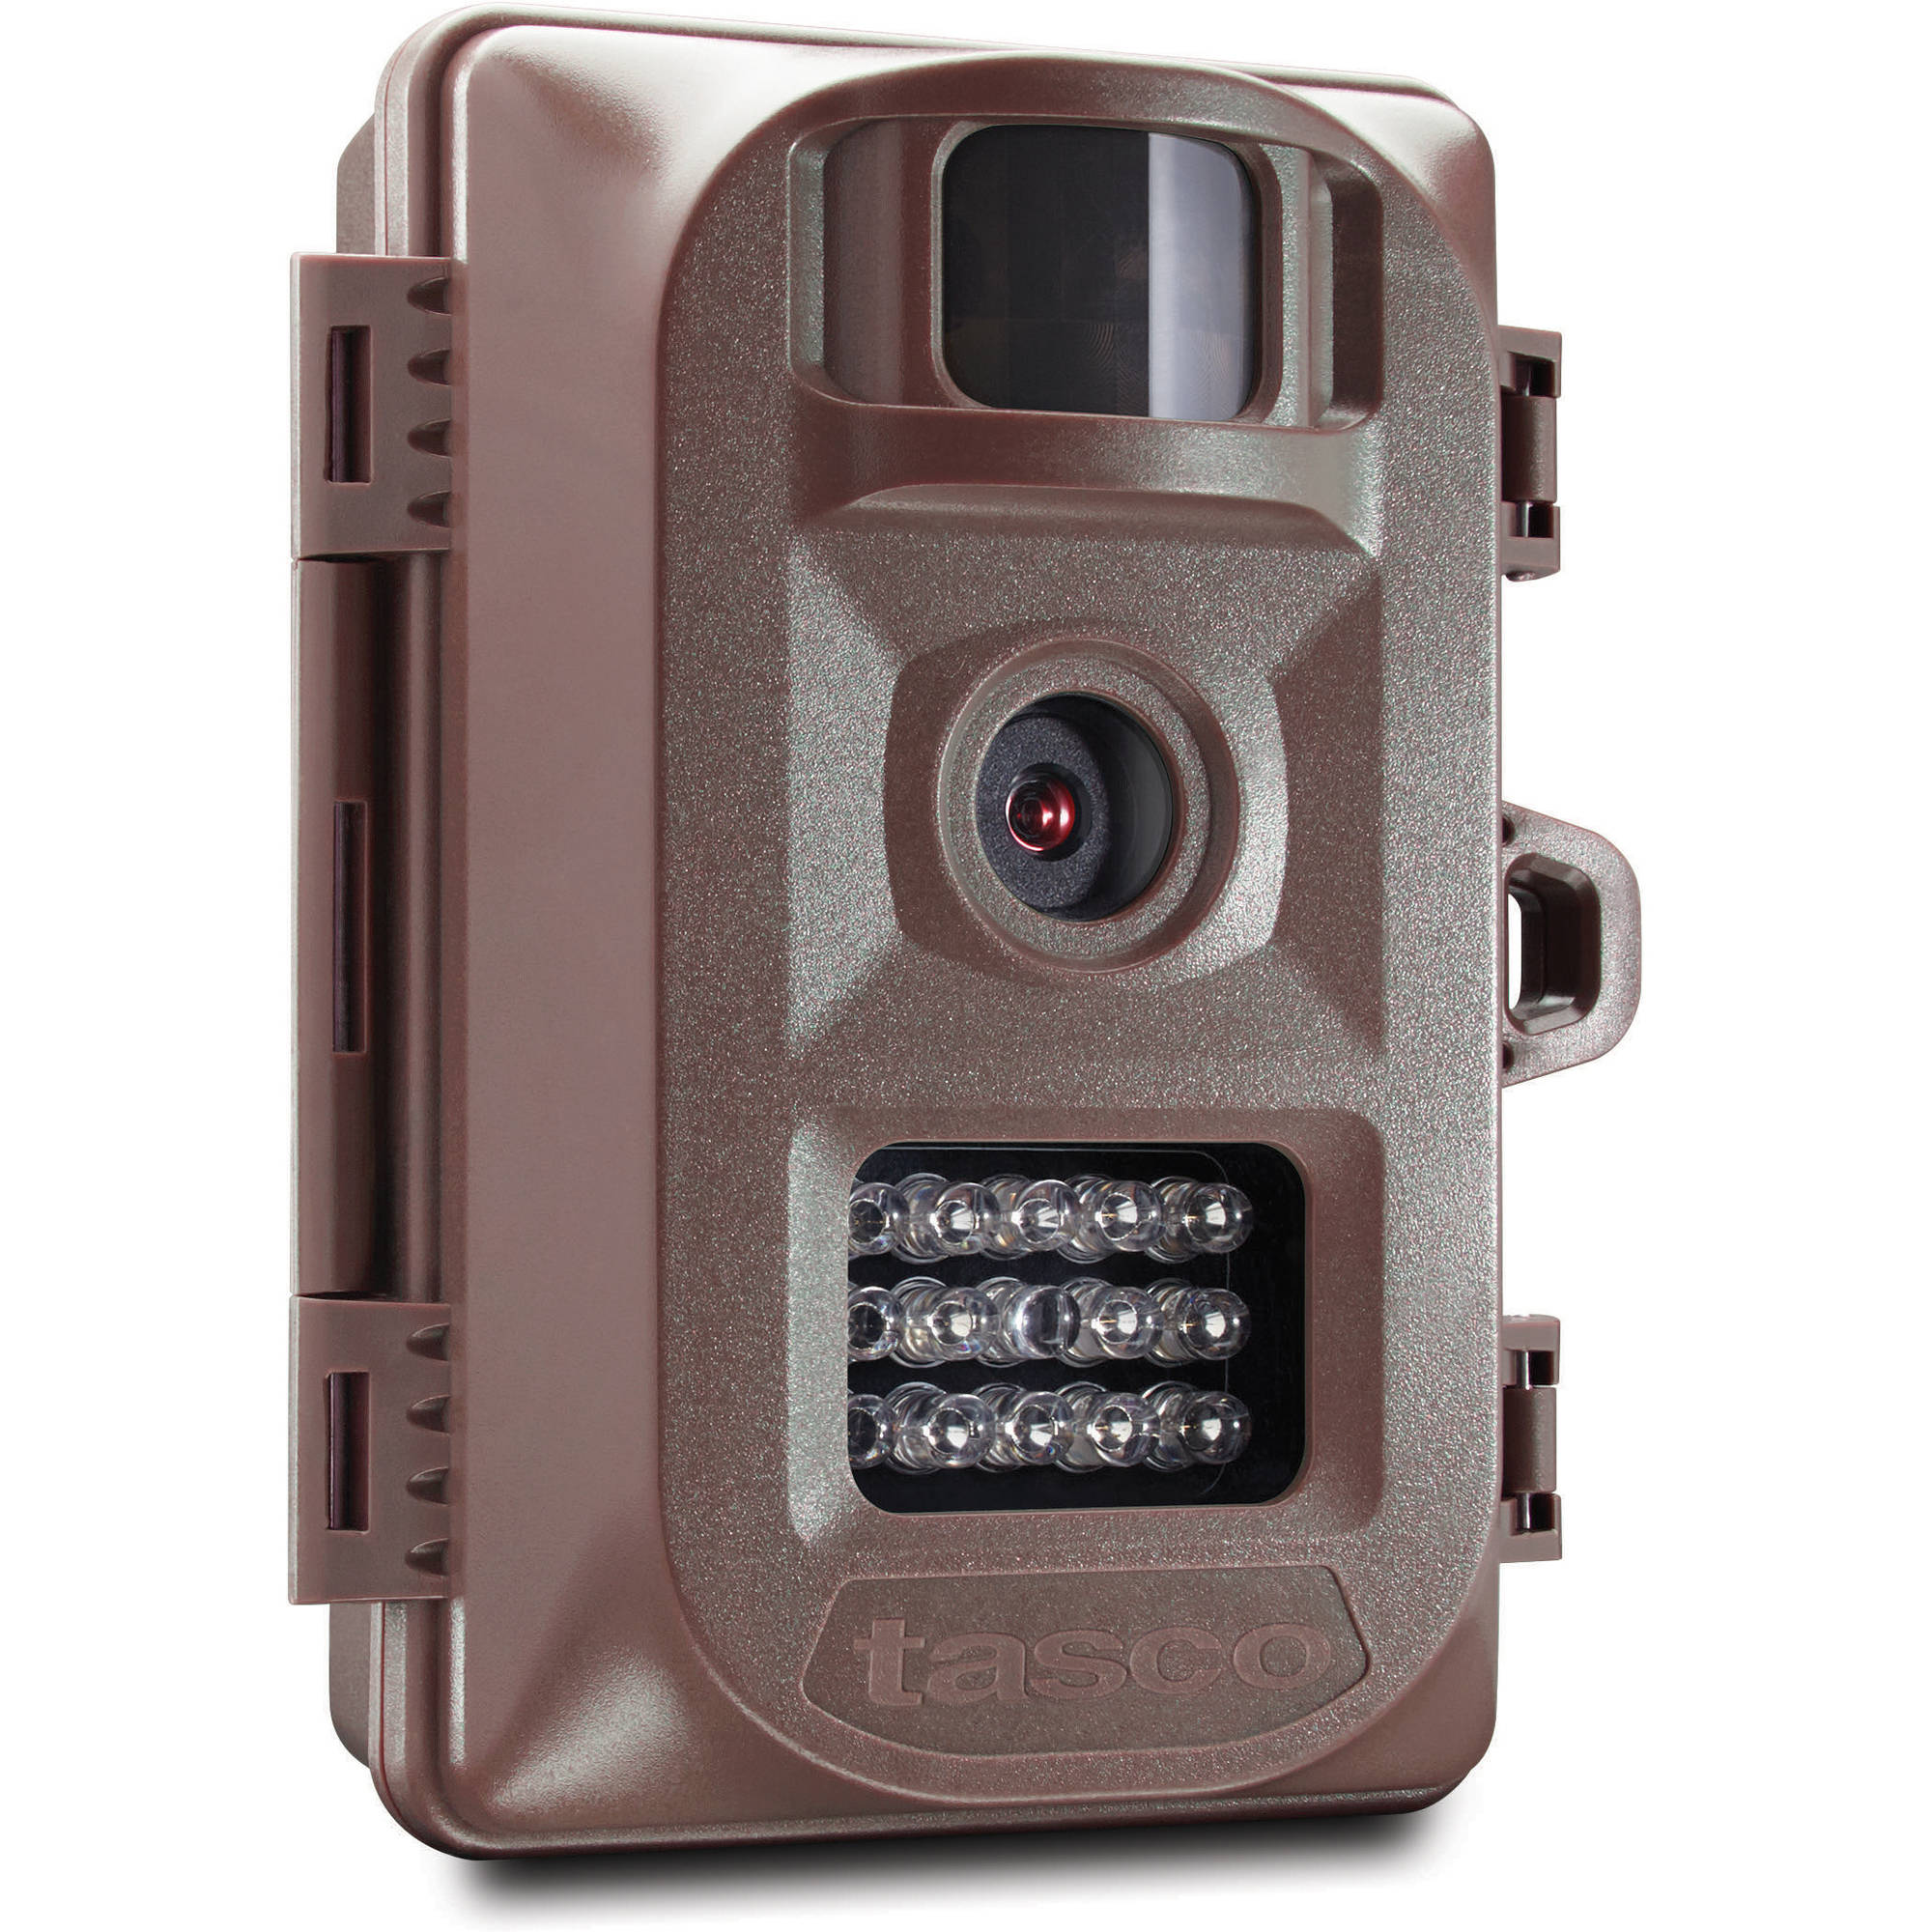 Tasco 3MP Trail Camera, Tan